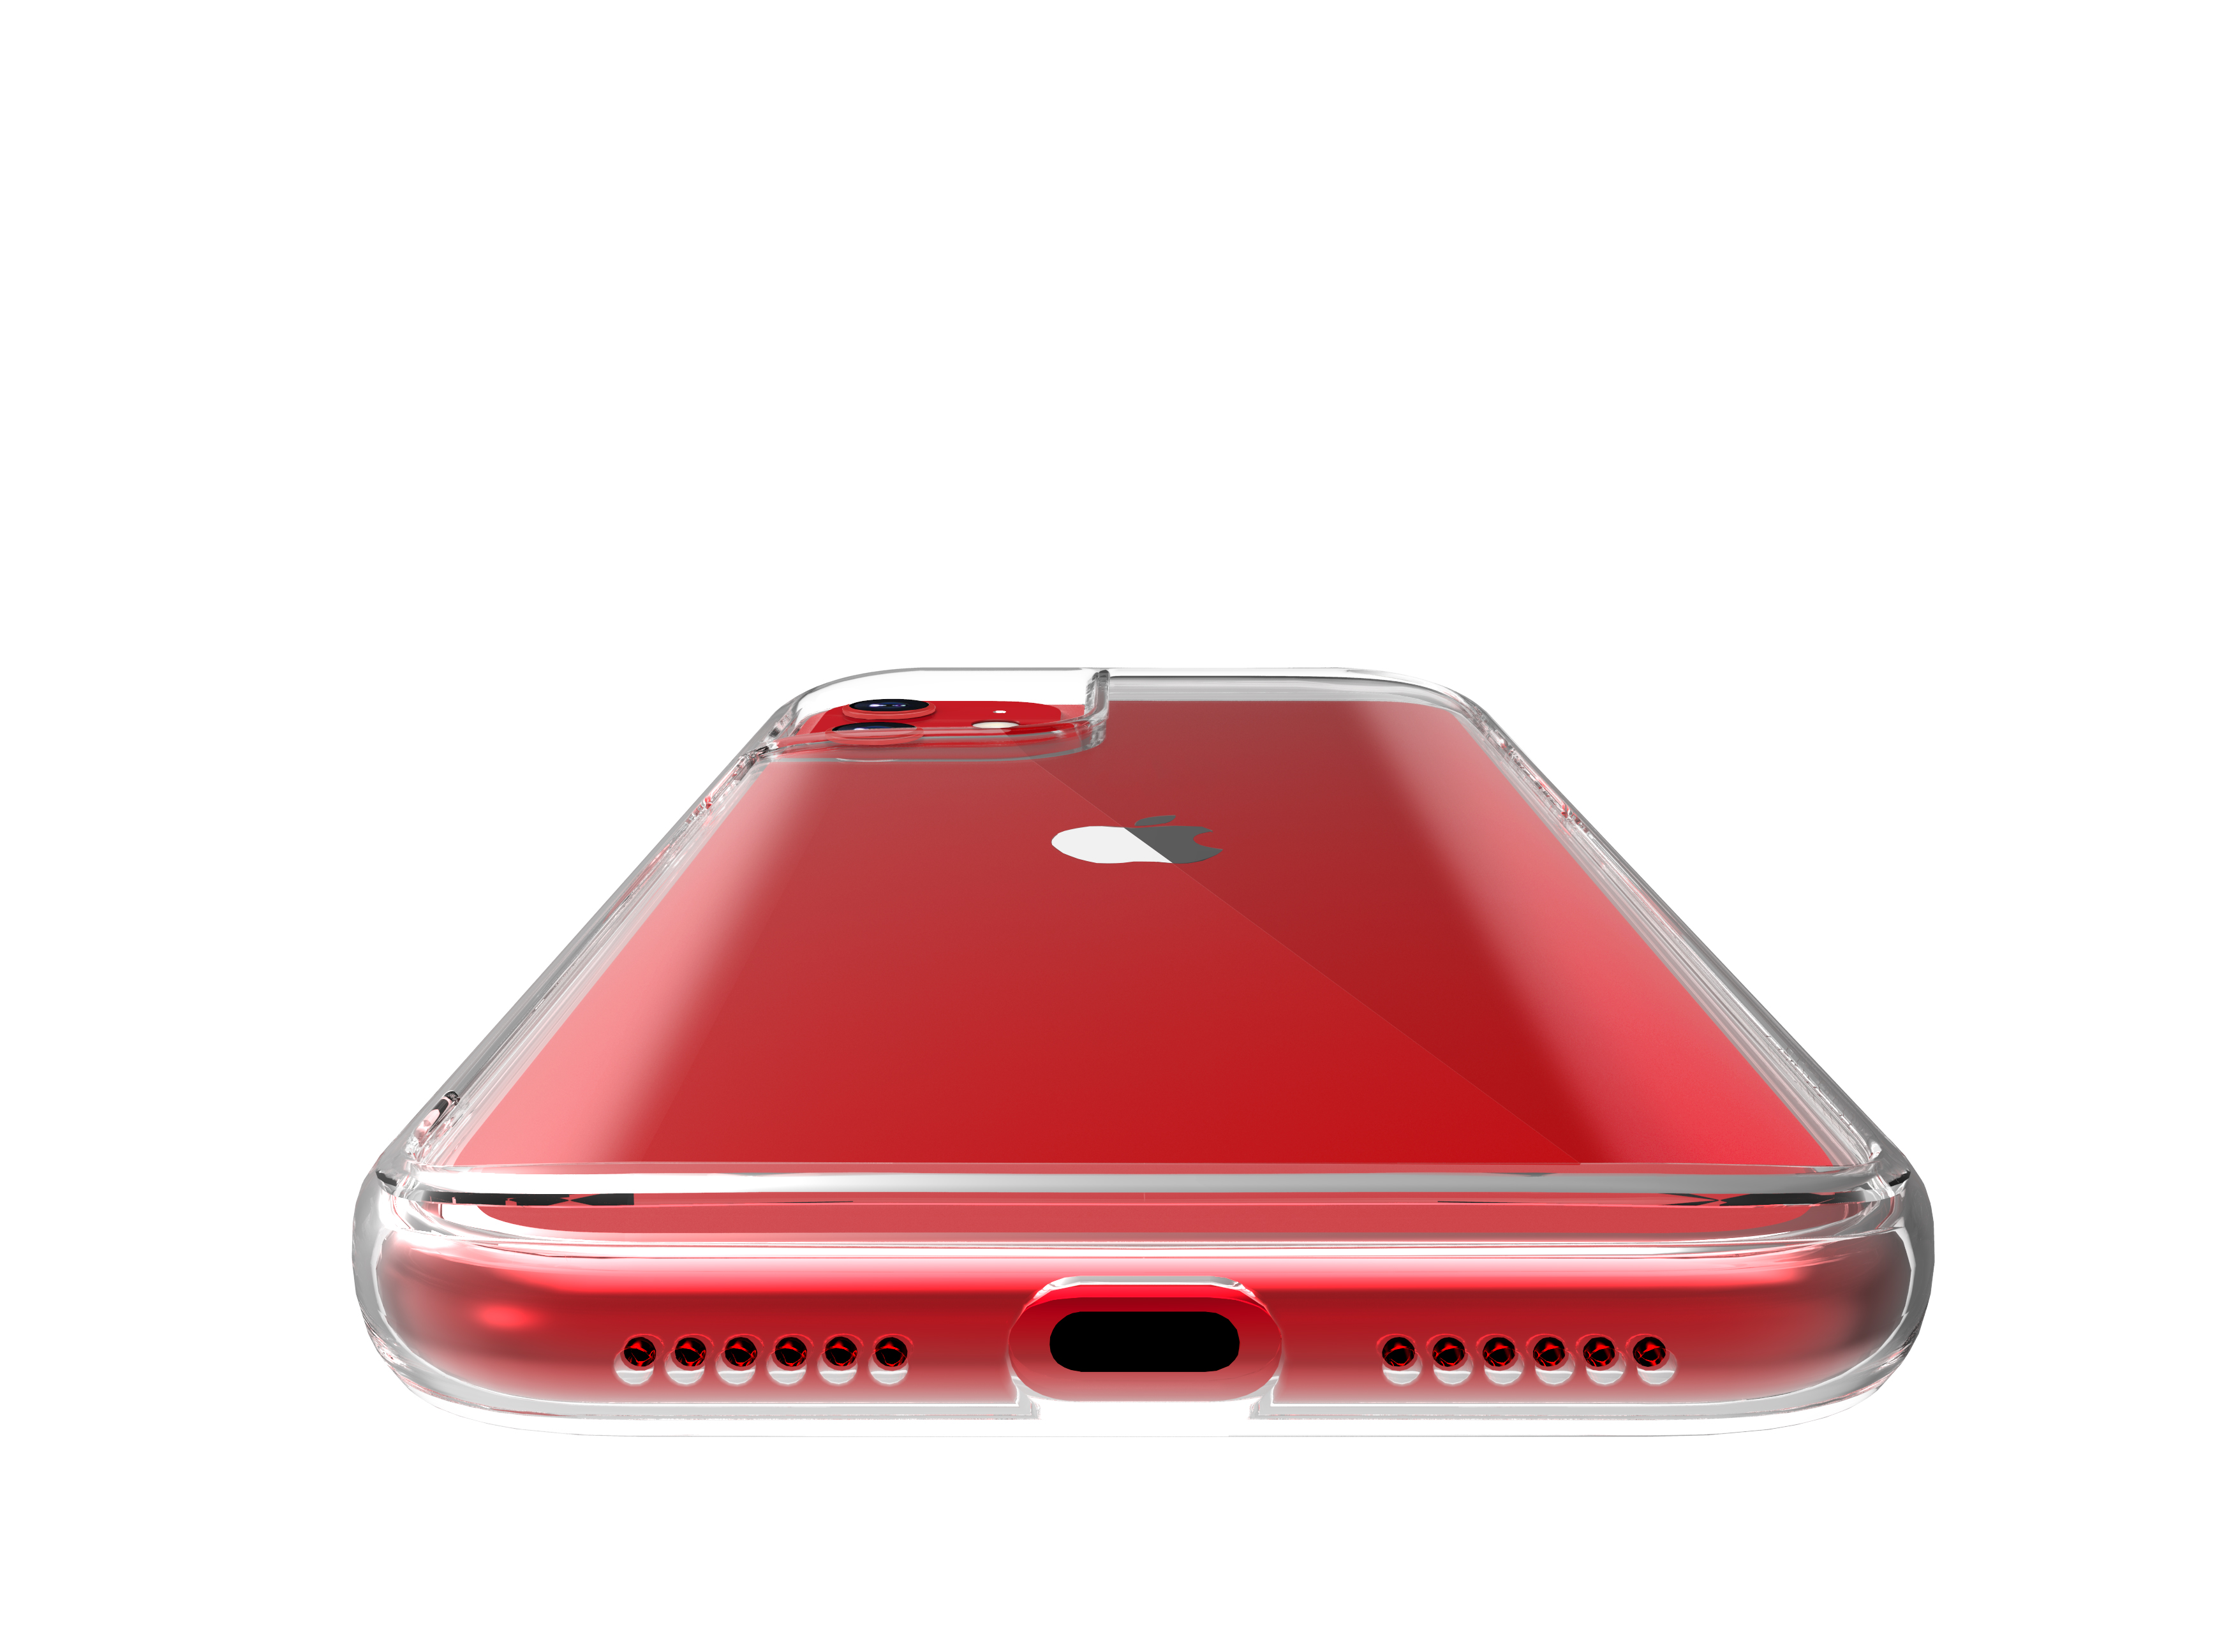 iPhone11-Red for linkase pro ADM